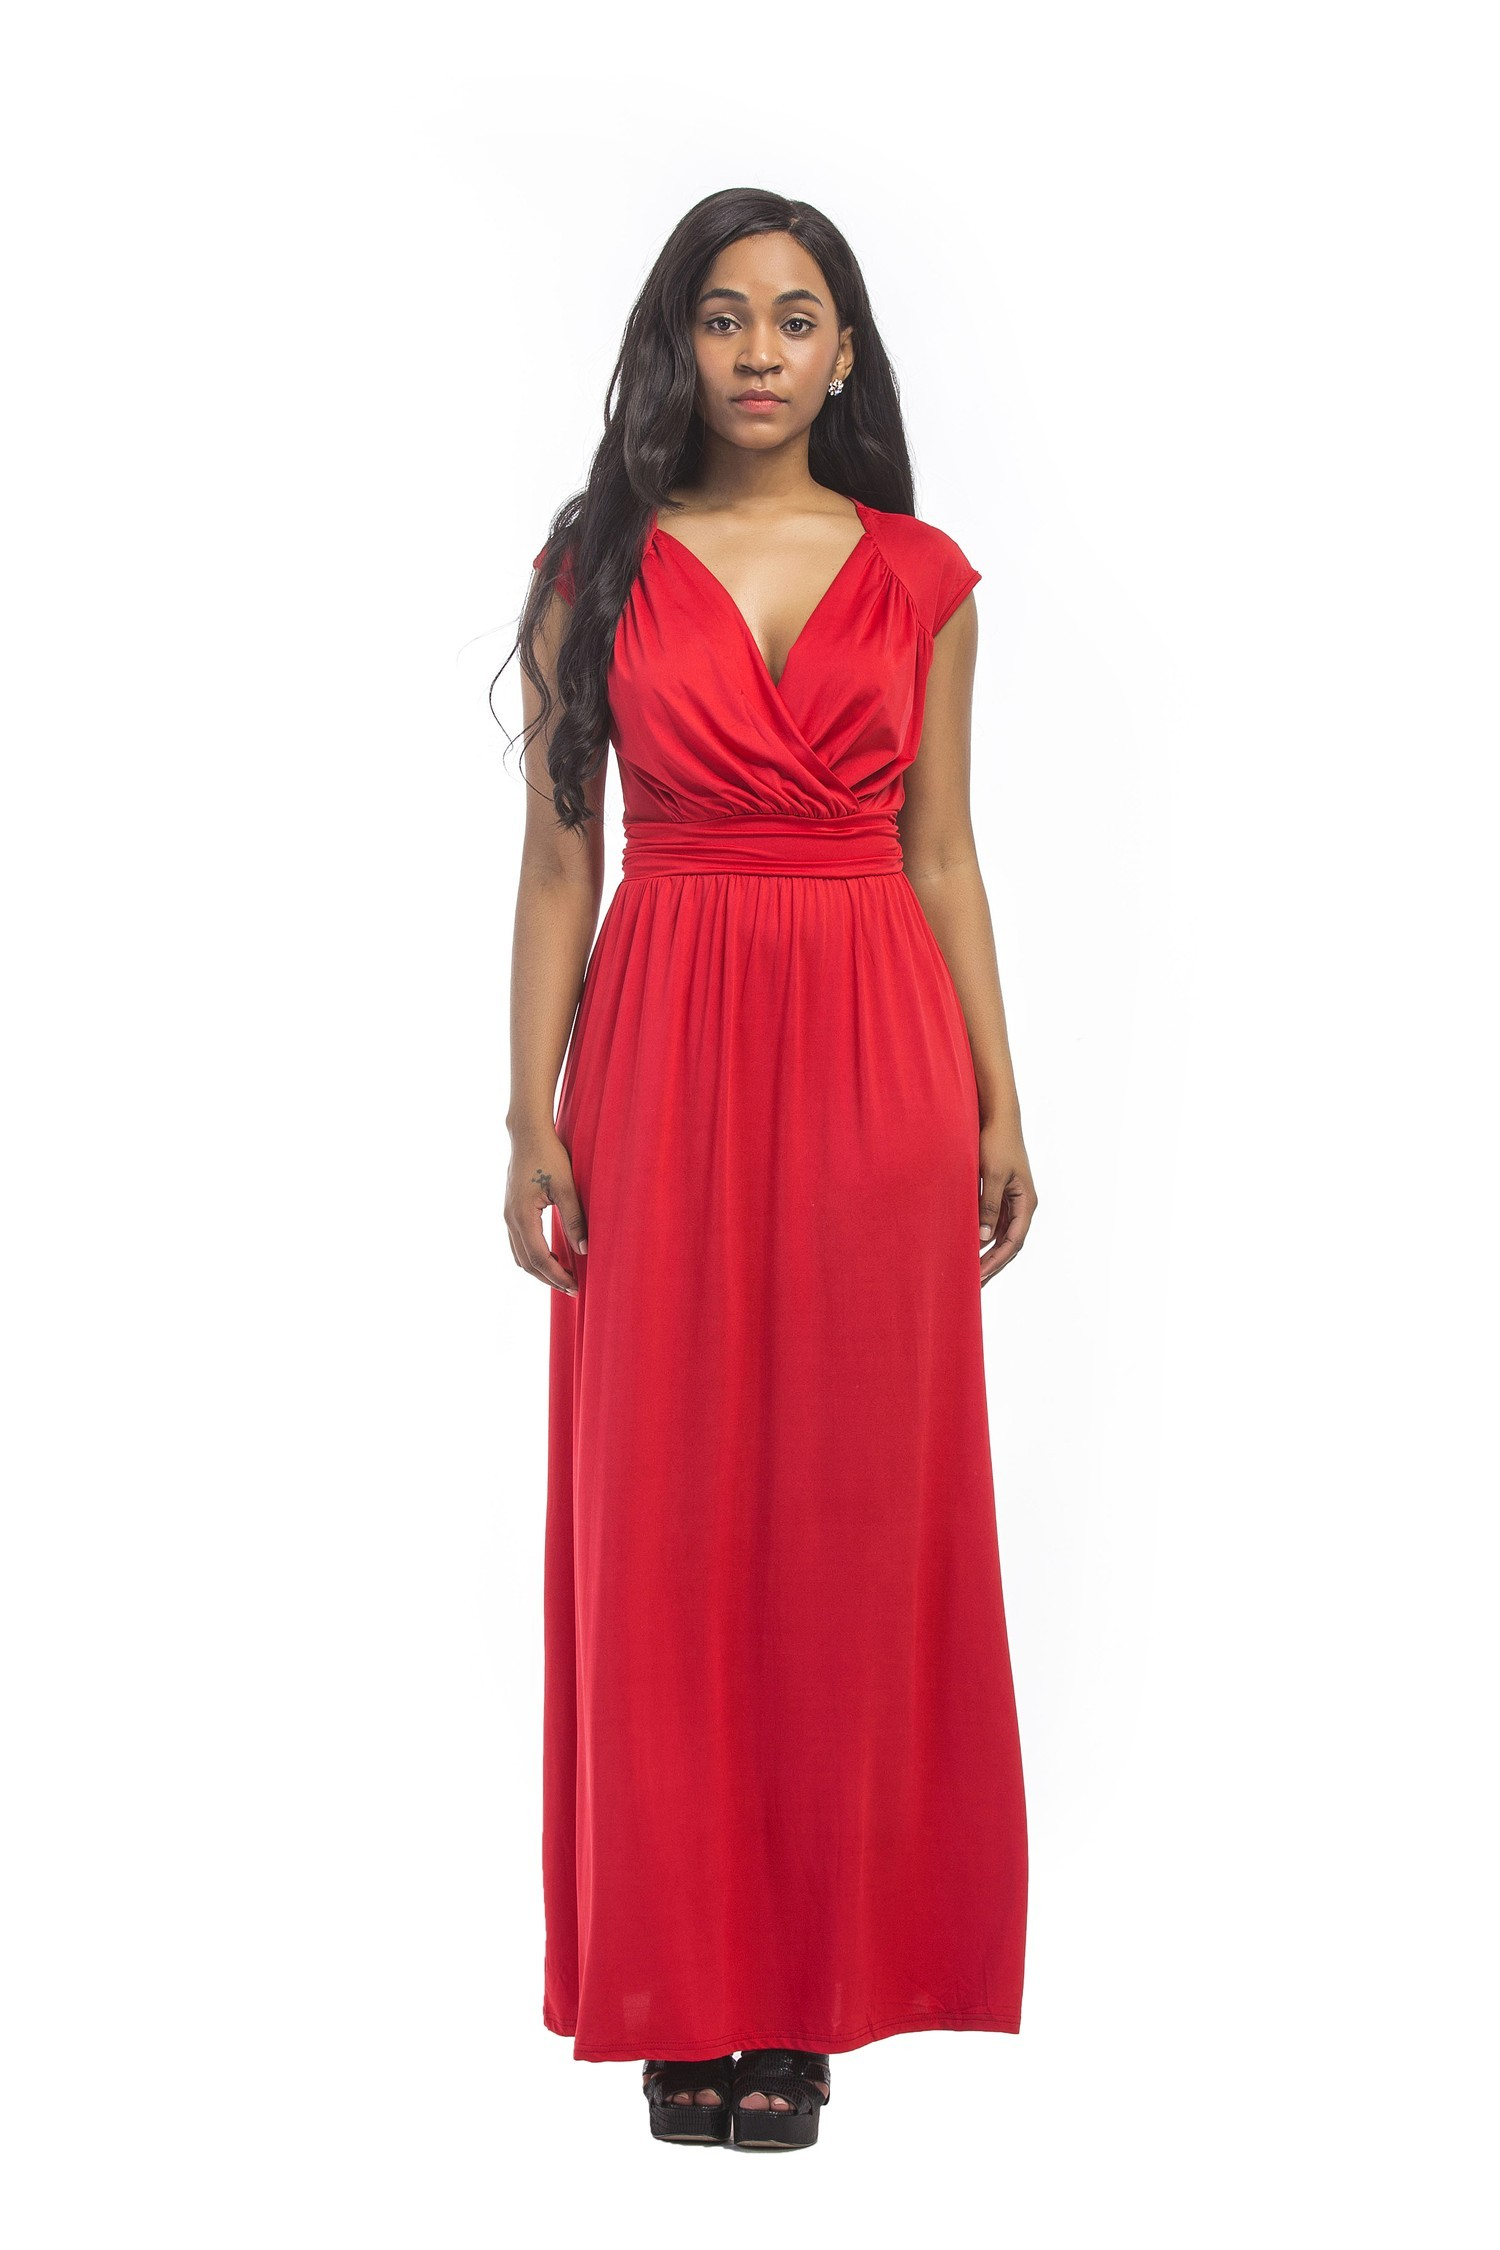 83992020eeb5 V Neck Cap Sleeve Maxi Length Red Jersey Ruched Evening Dress